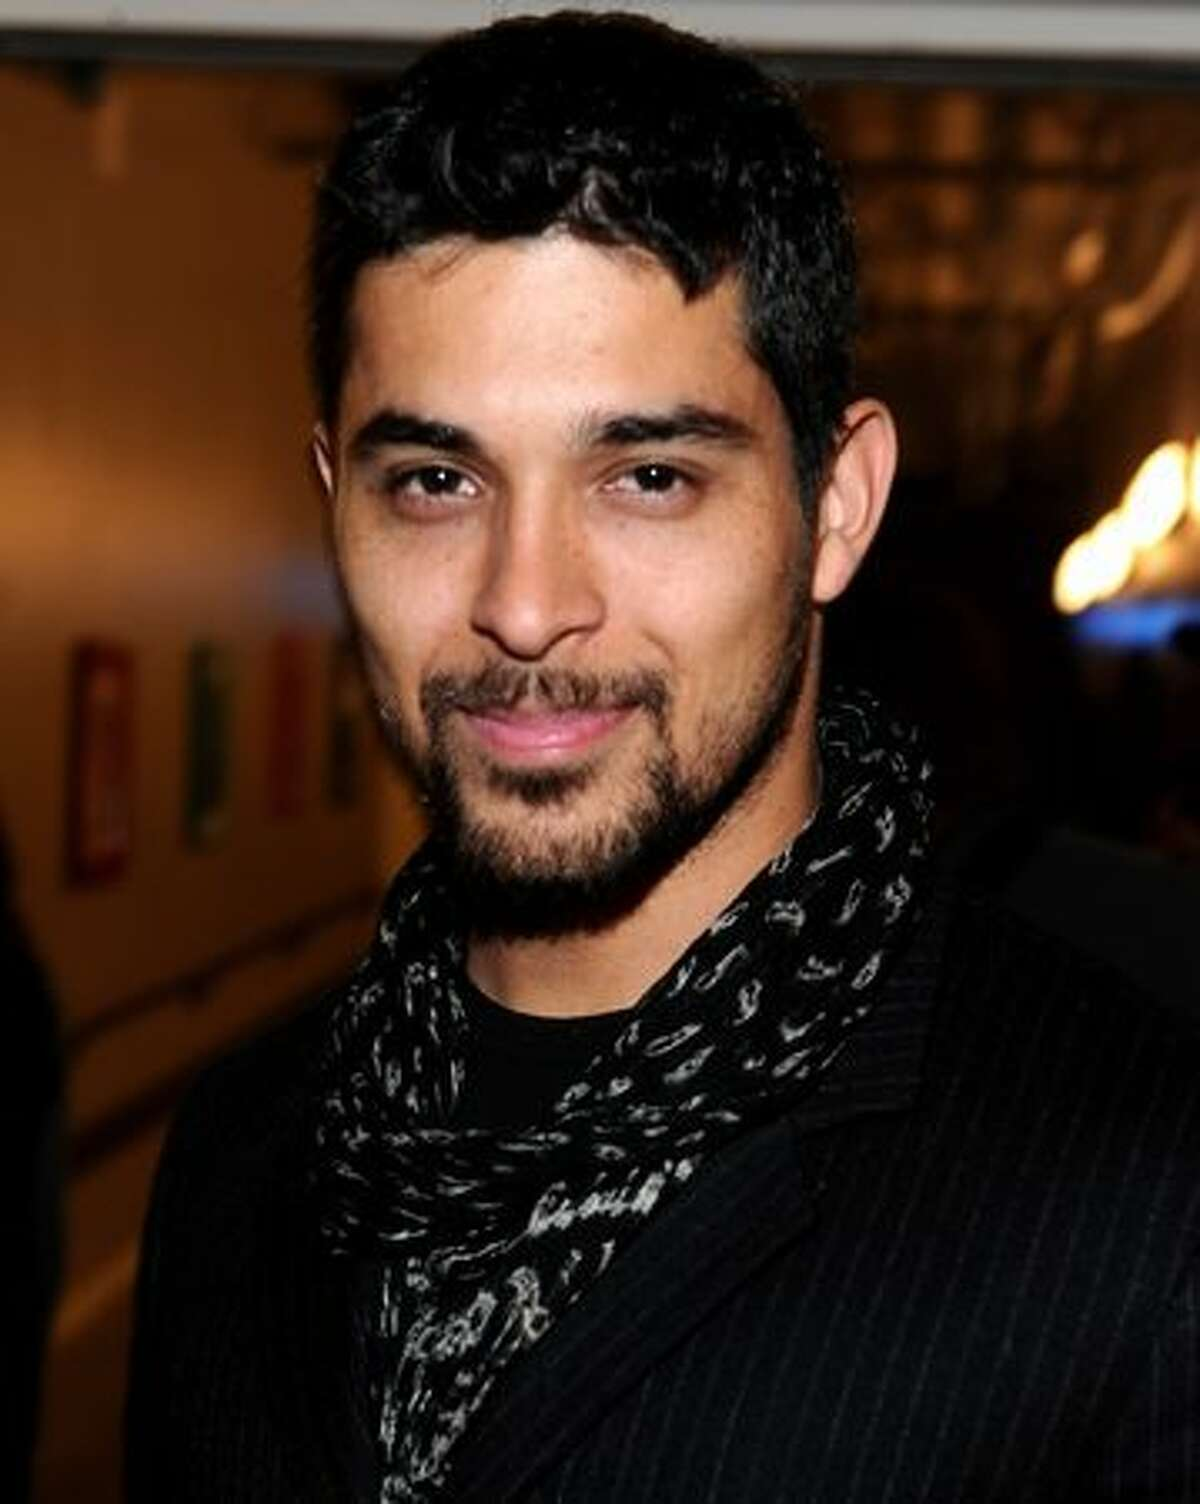 Actor Wilmer Valderrama attends the inaugural St. Jude Children's Hospital's